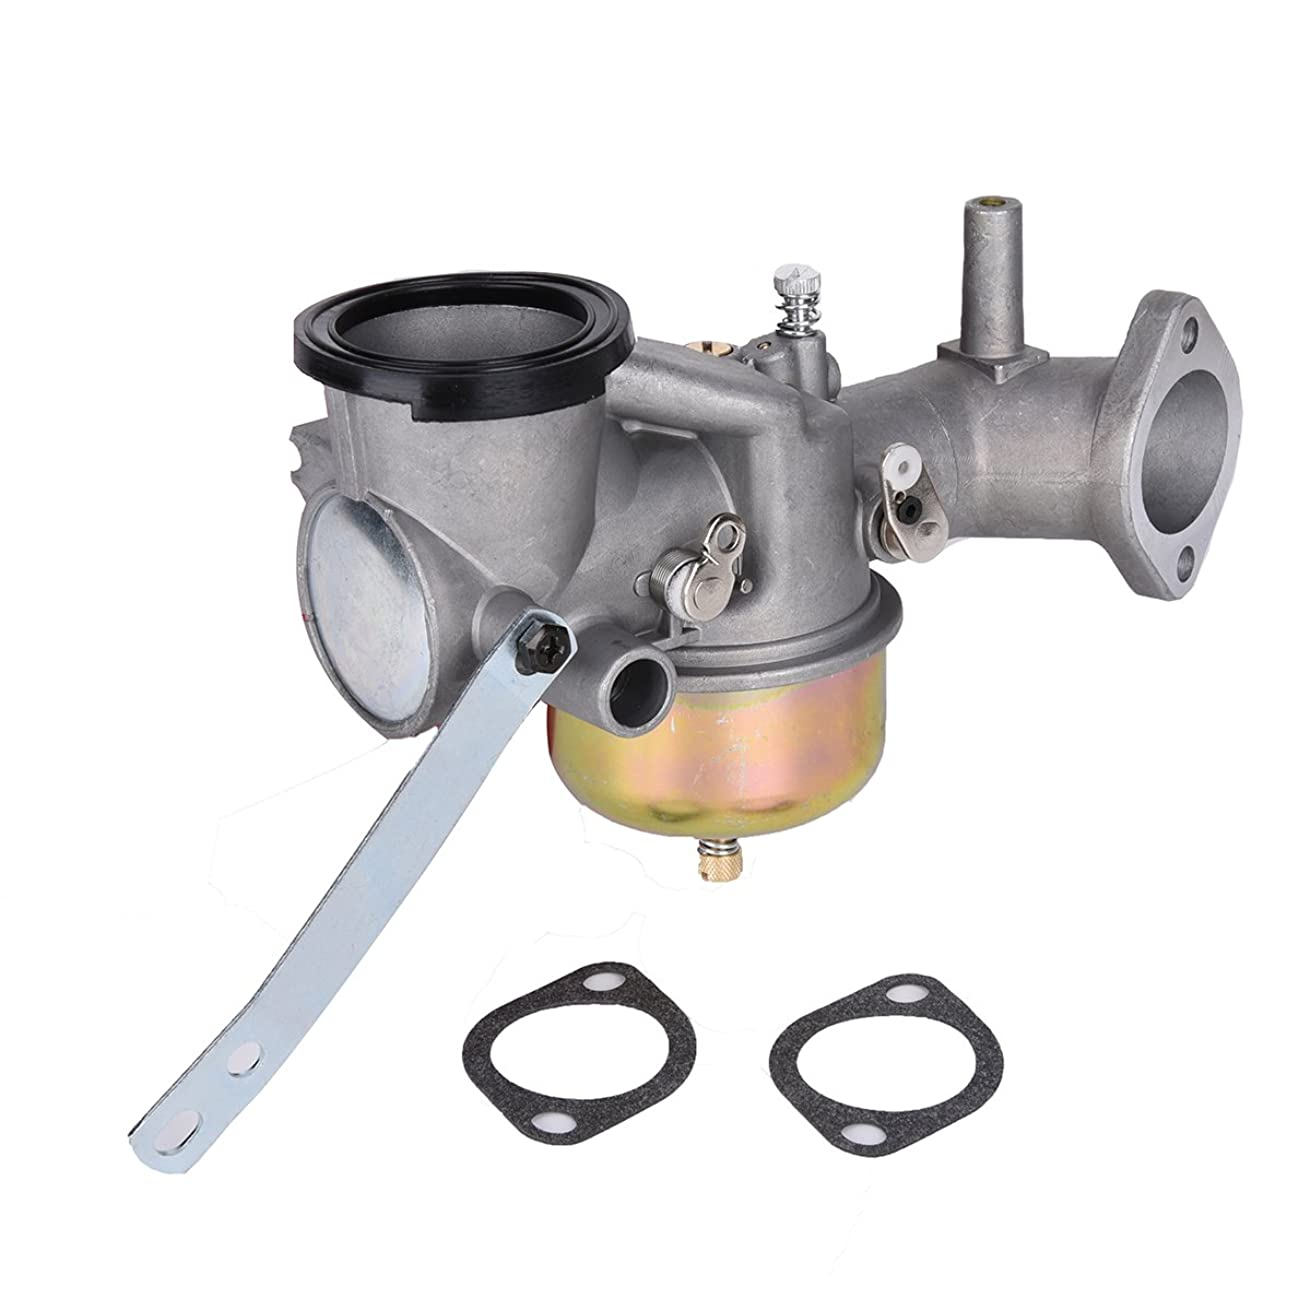 Wingsmoto Replacement Carburetor for Briggs & Stratton 490499 491026 281707 12HP Engine